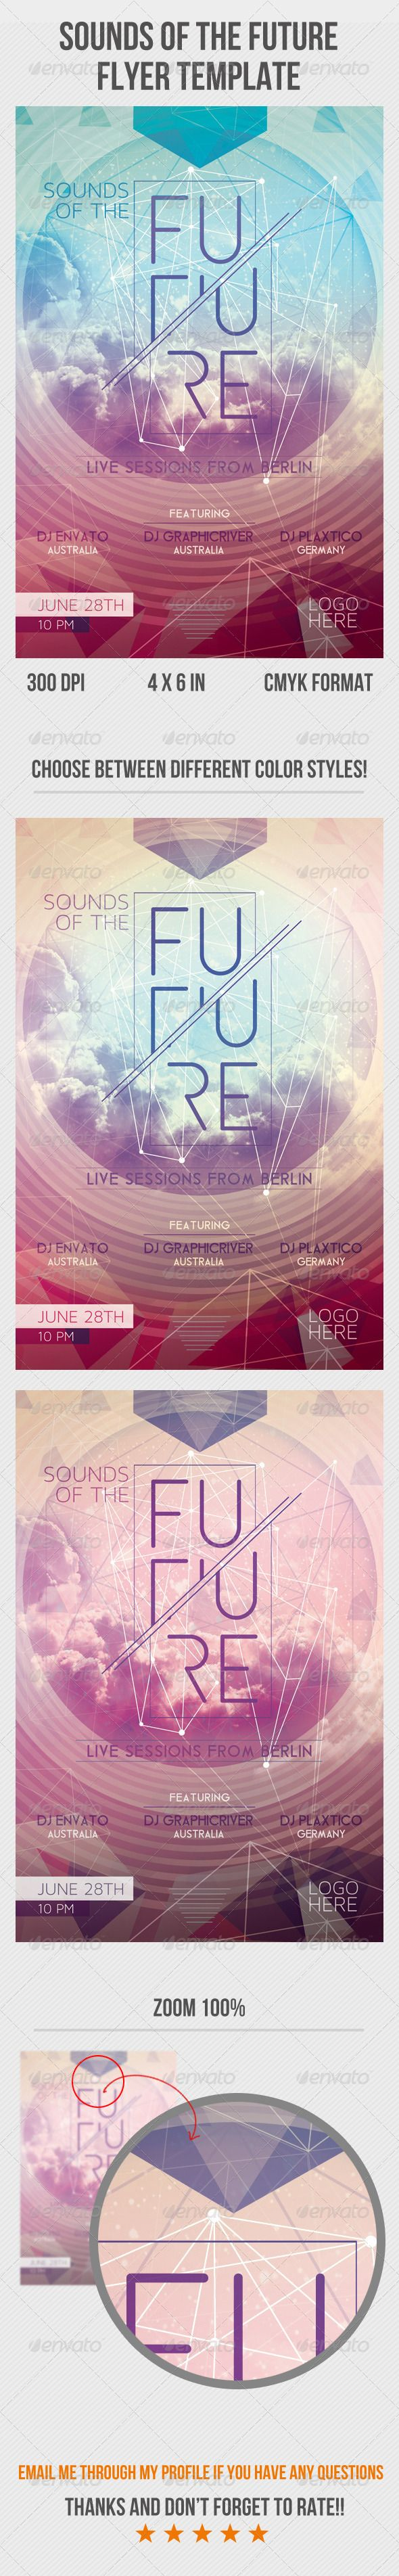 Sounds Of The Future Flyer Template PSD | Buy and Download…